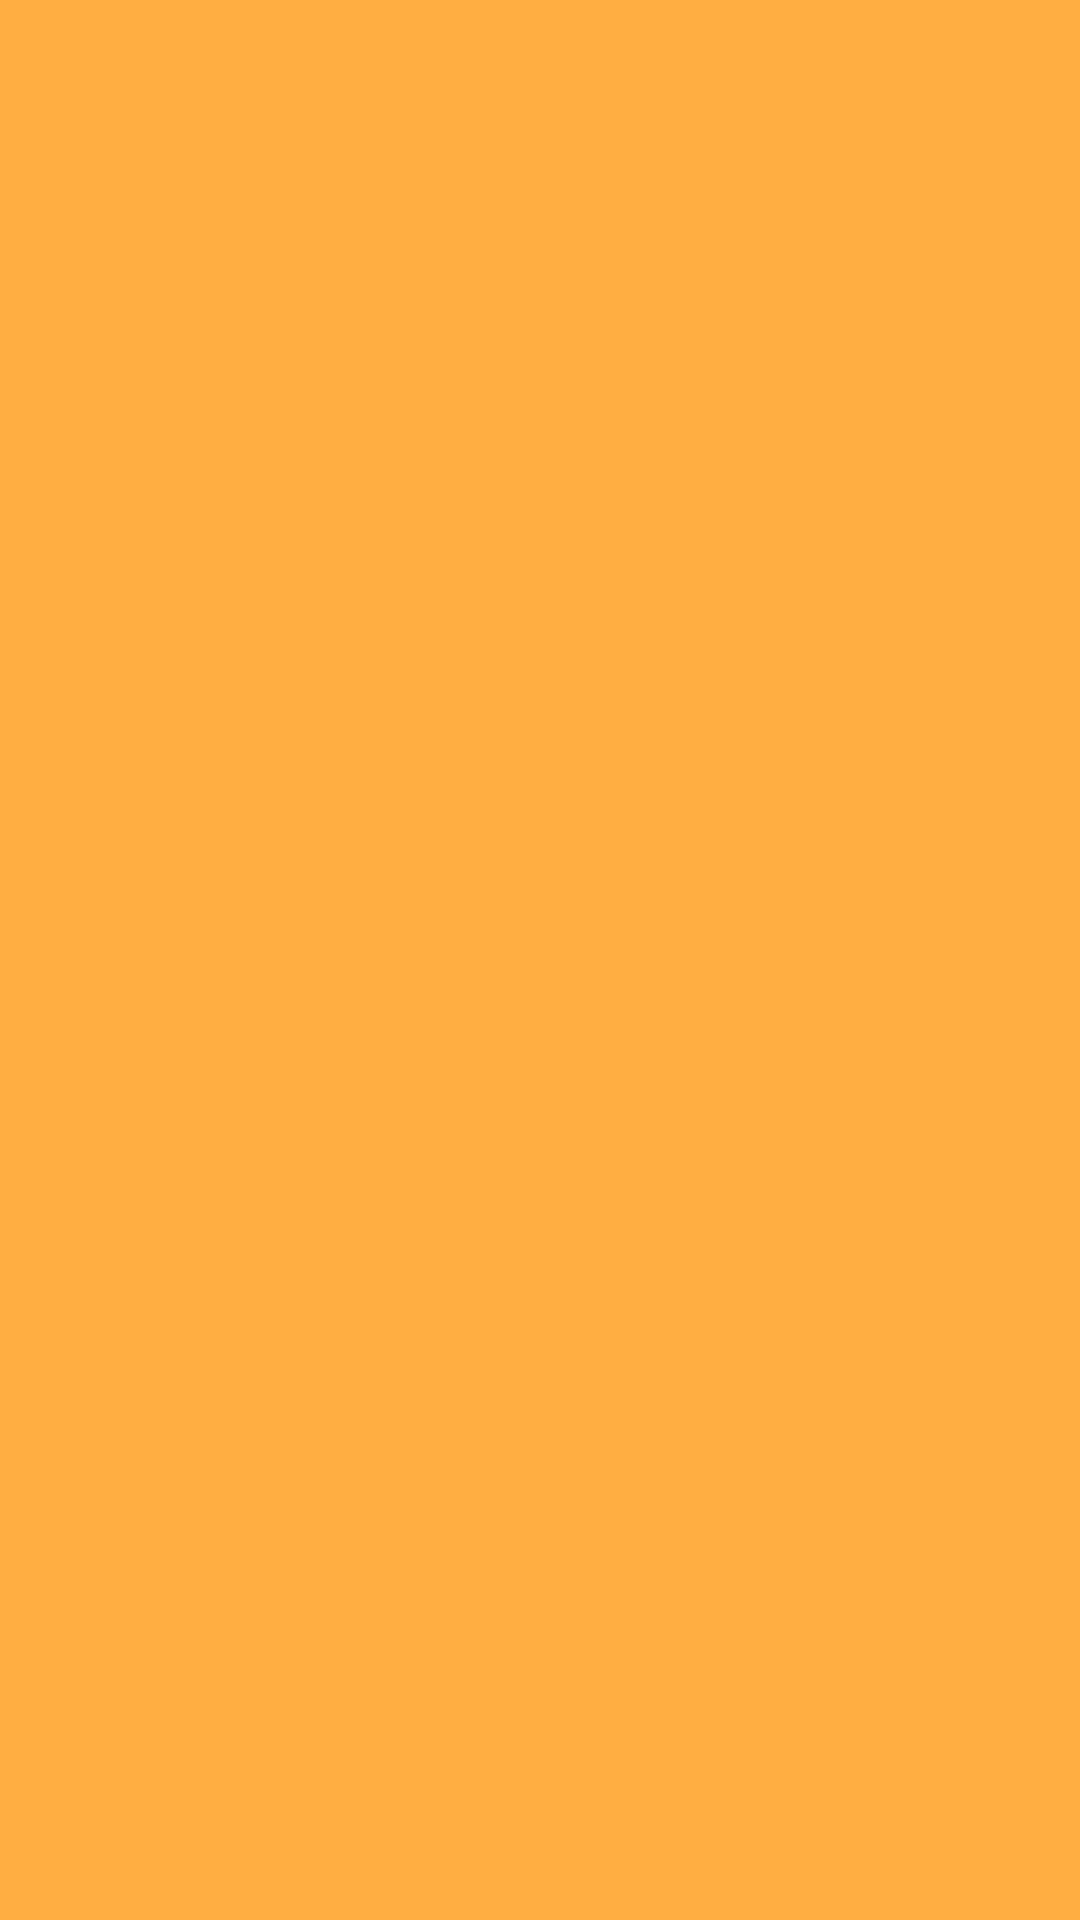 1080x1920 Yellow Orange Solid Color Background